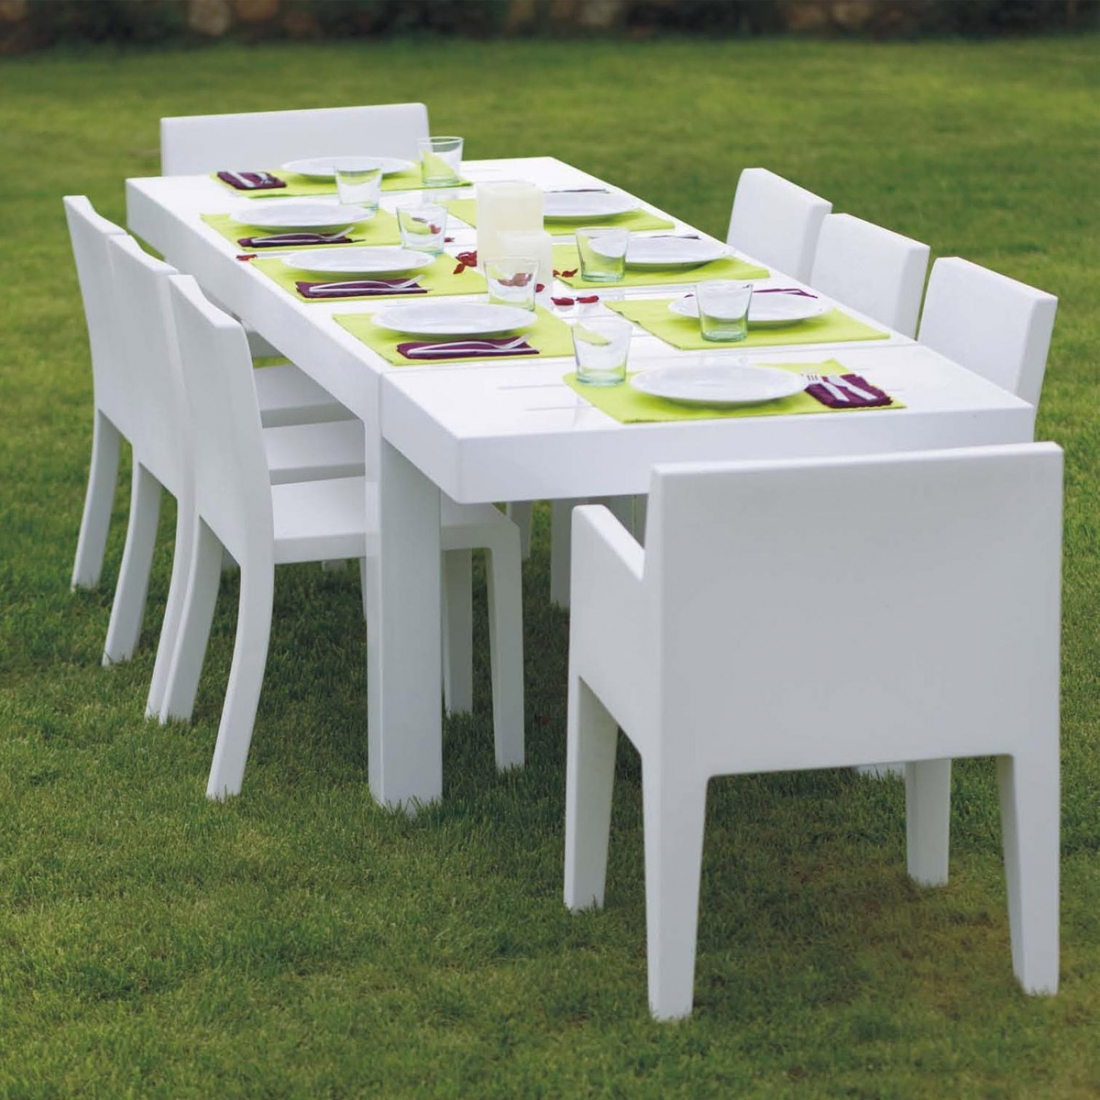 Table de jardin design 10 personnes jut par vondom for Design jardins